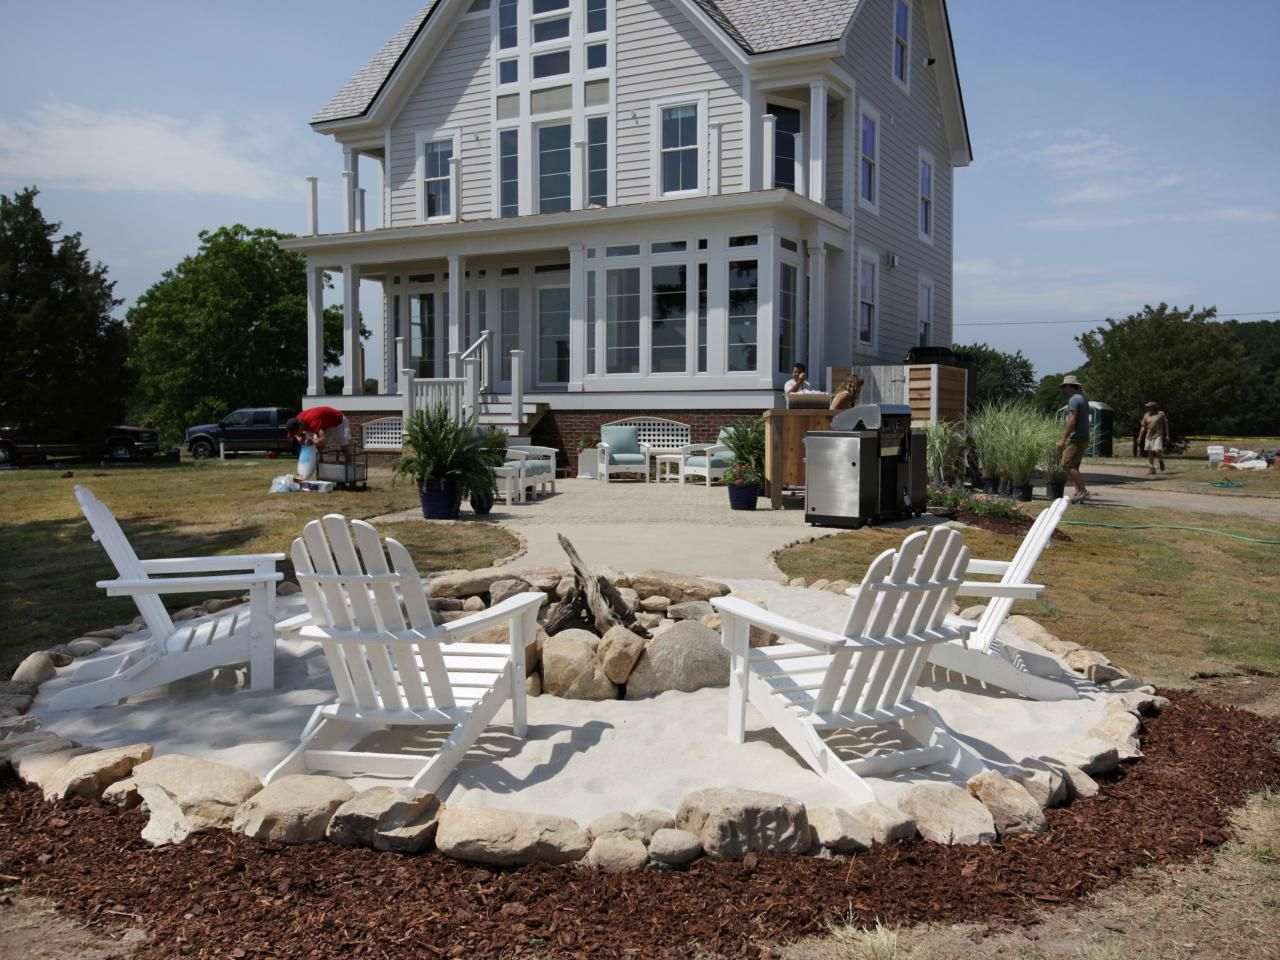 How to Create a Fieldstone and Sand Fire Pit Area | yard | Pinterest ...